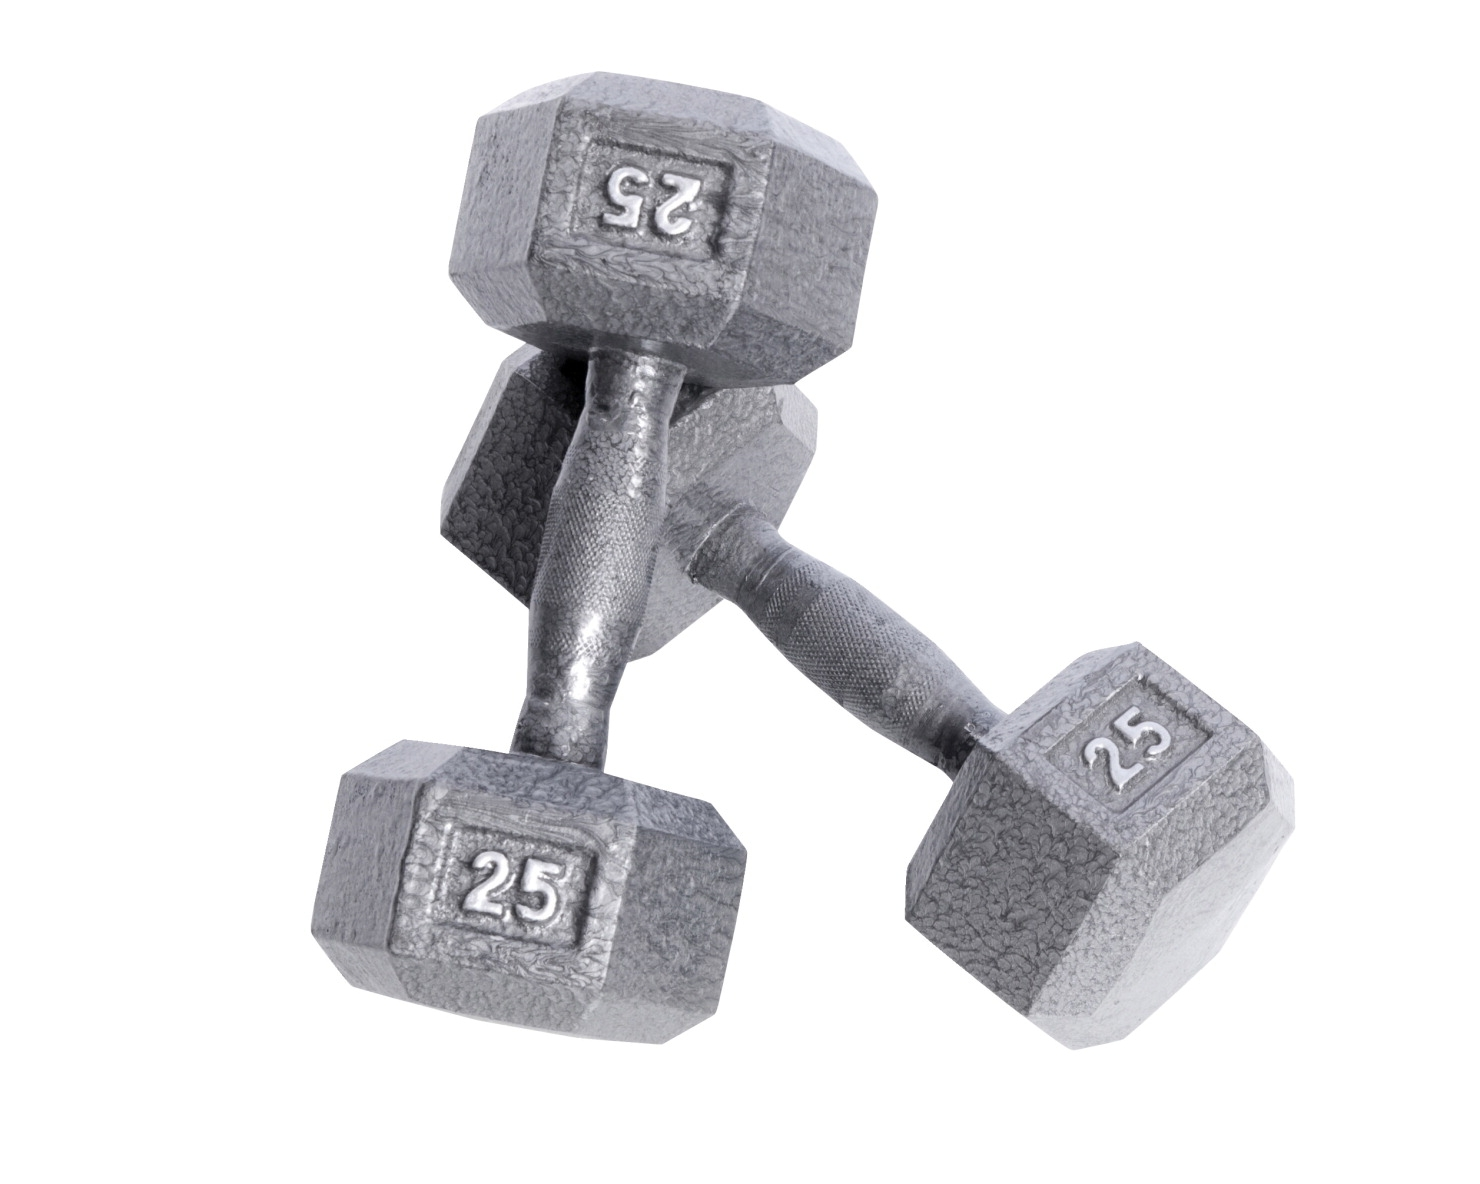 Hampton 2 Lb. Dumbbell; Set Of 2 - 1507414 - Fitness Dumbbells Pro Hexhead Dumbbells 1507414